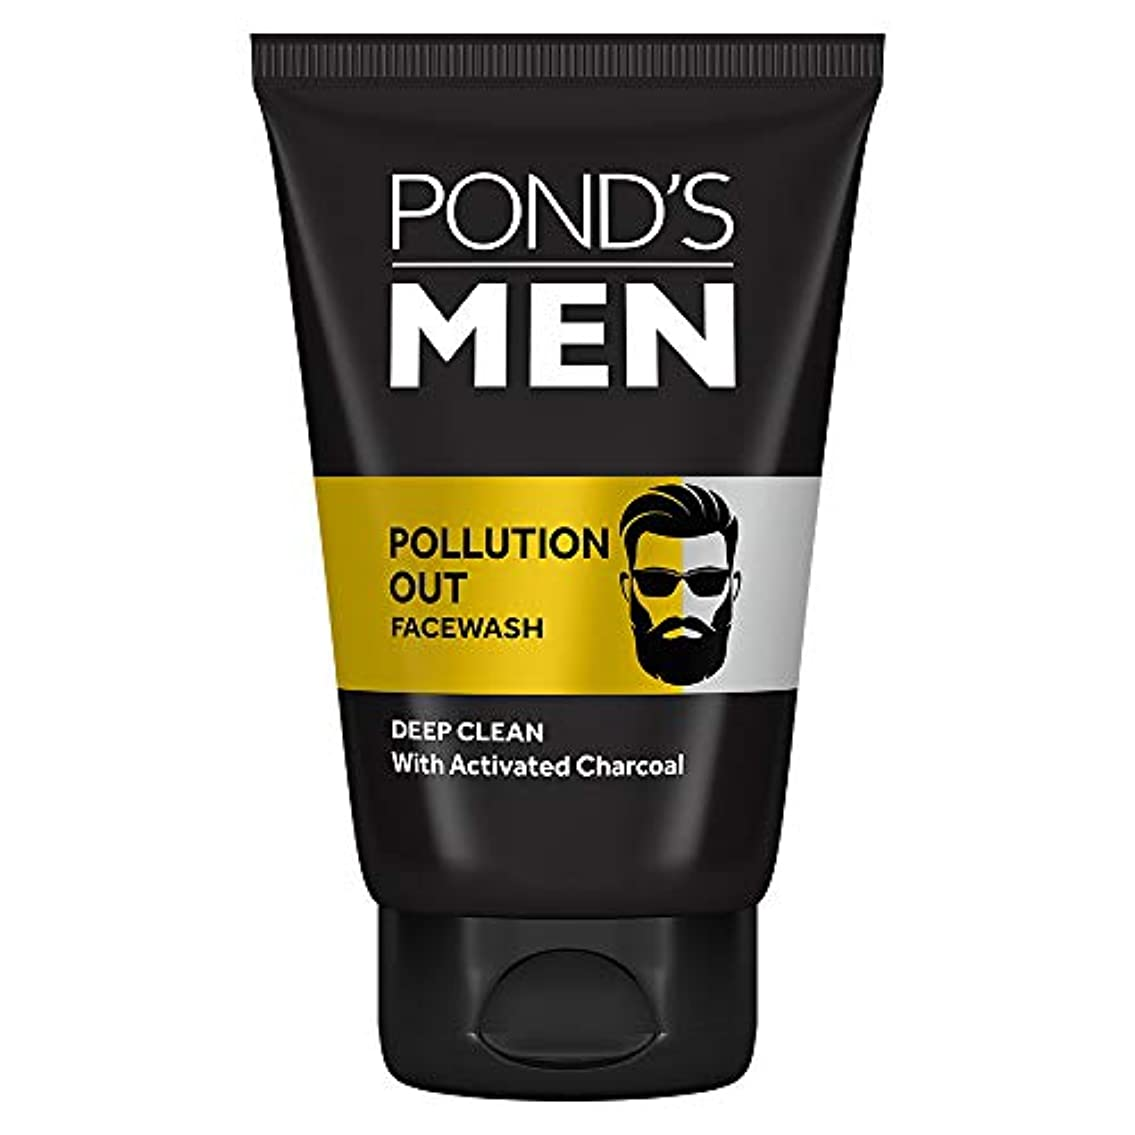 行政正統派線形Pond's Men Pollution Out Face Wash, Feel Fresh 100gm